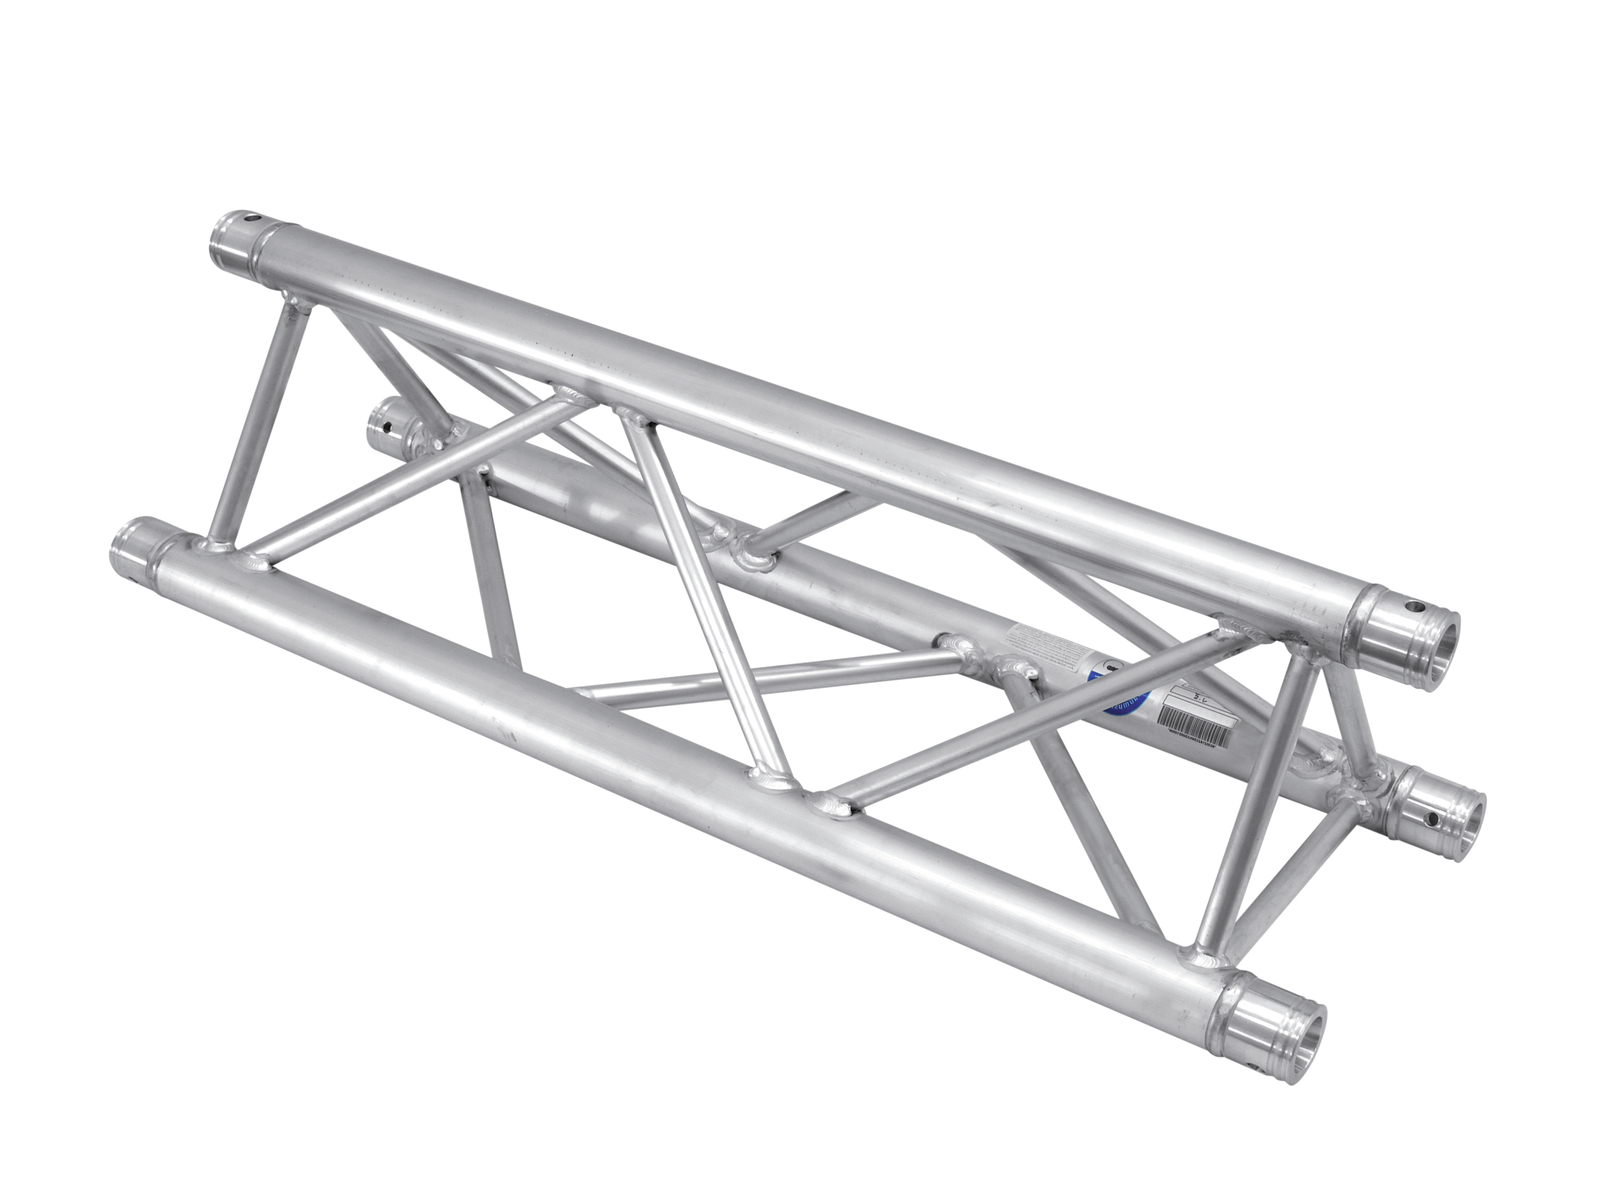 ALUTRUSS TRILOCK E-GL33 2000 a 3 vie traverse